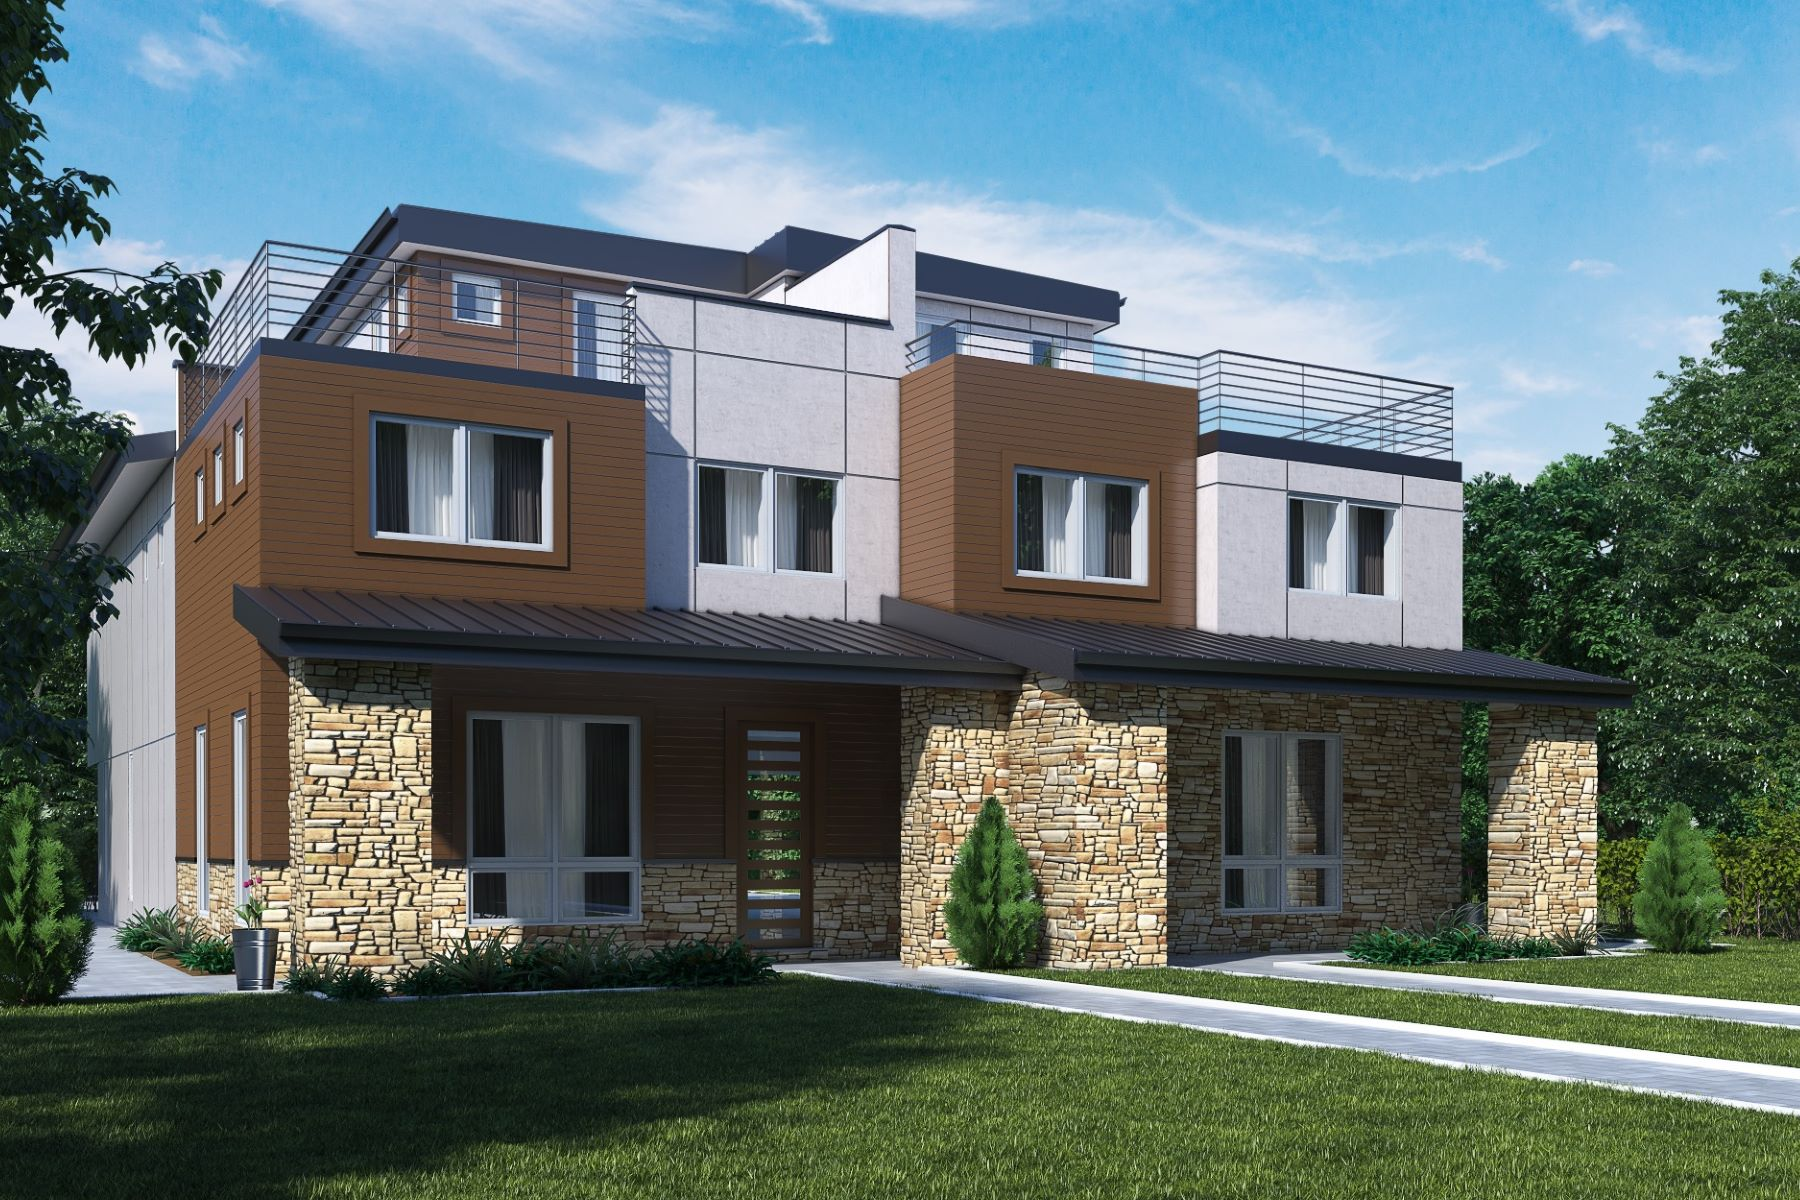 Single Family Homes for Sale at Stunning new construction by MAG builders. 3522 S Emerson St Englewood, Colorado 80113 United States